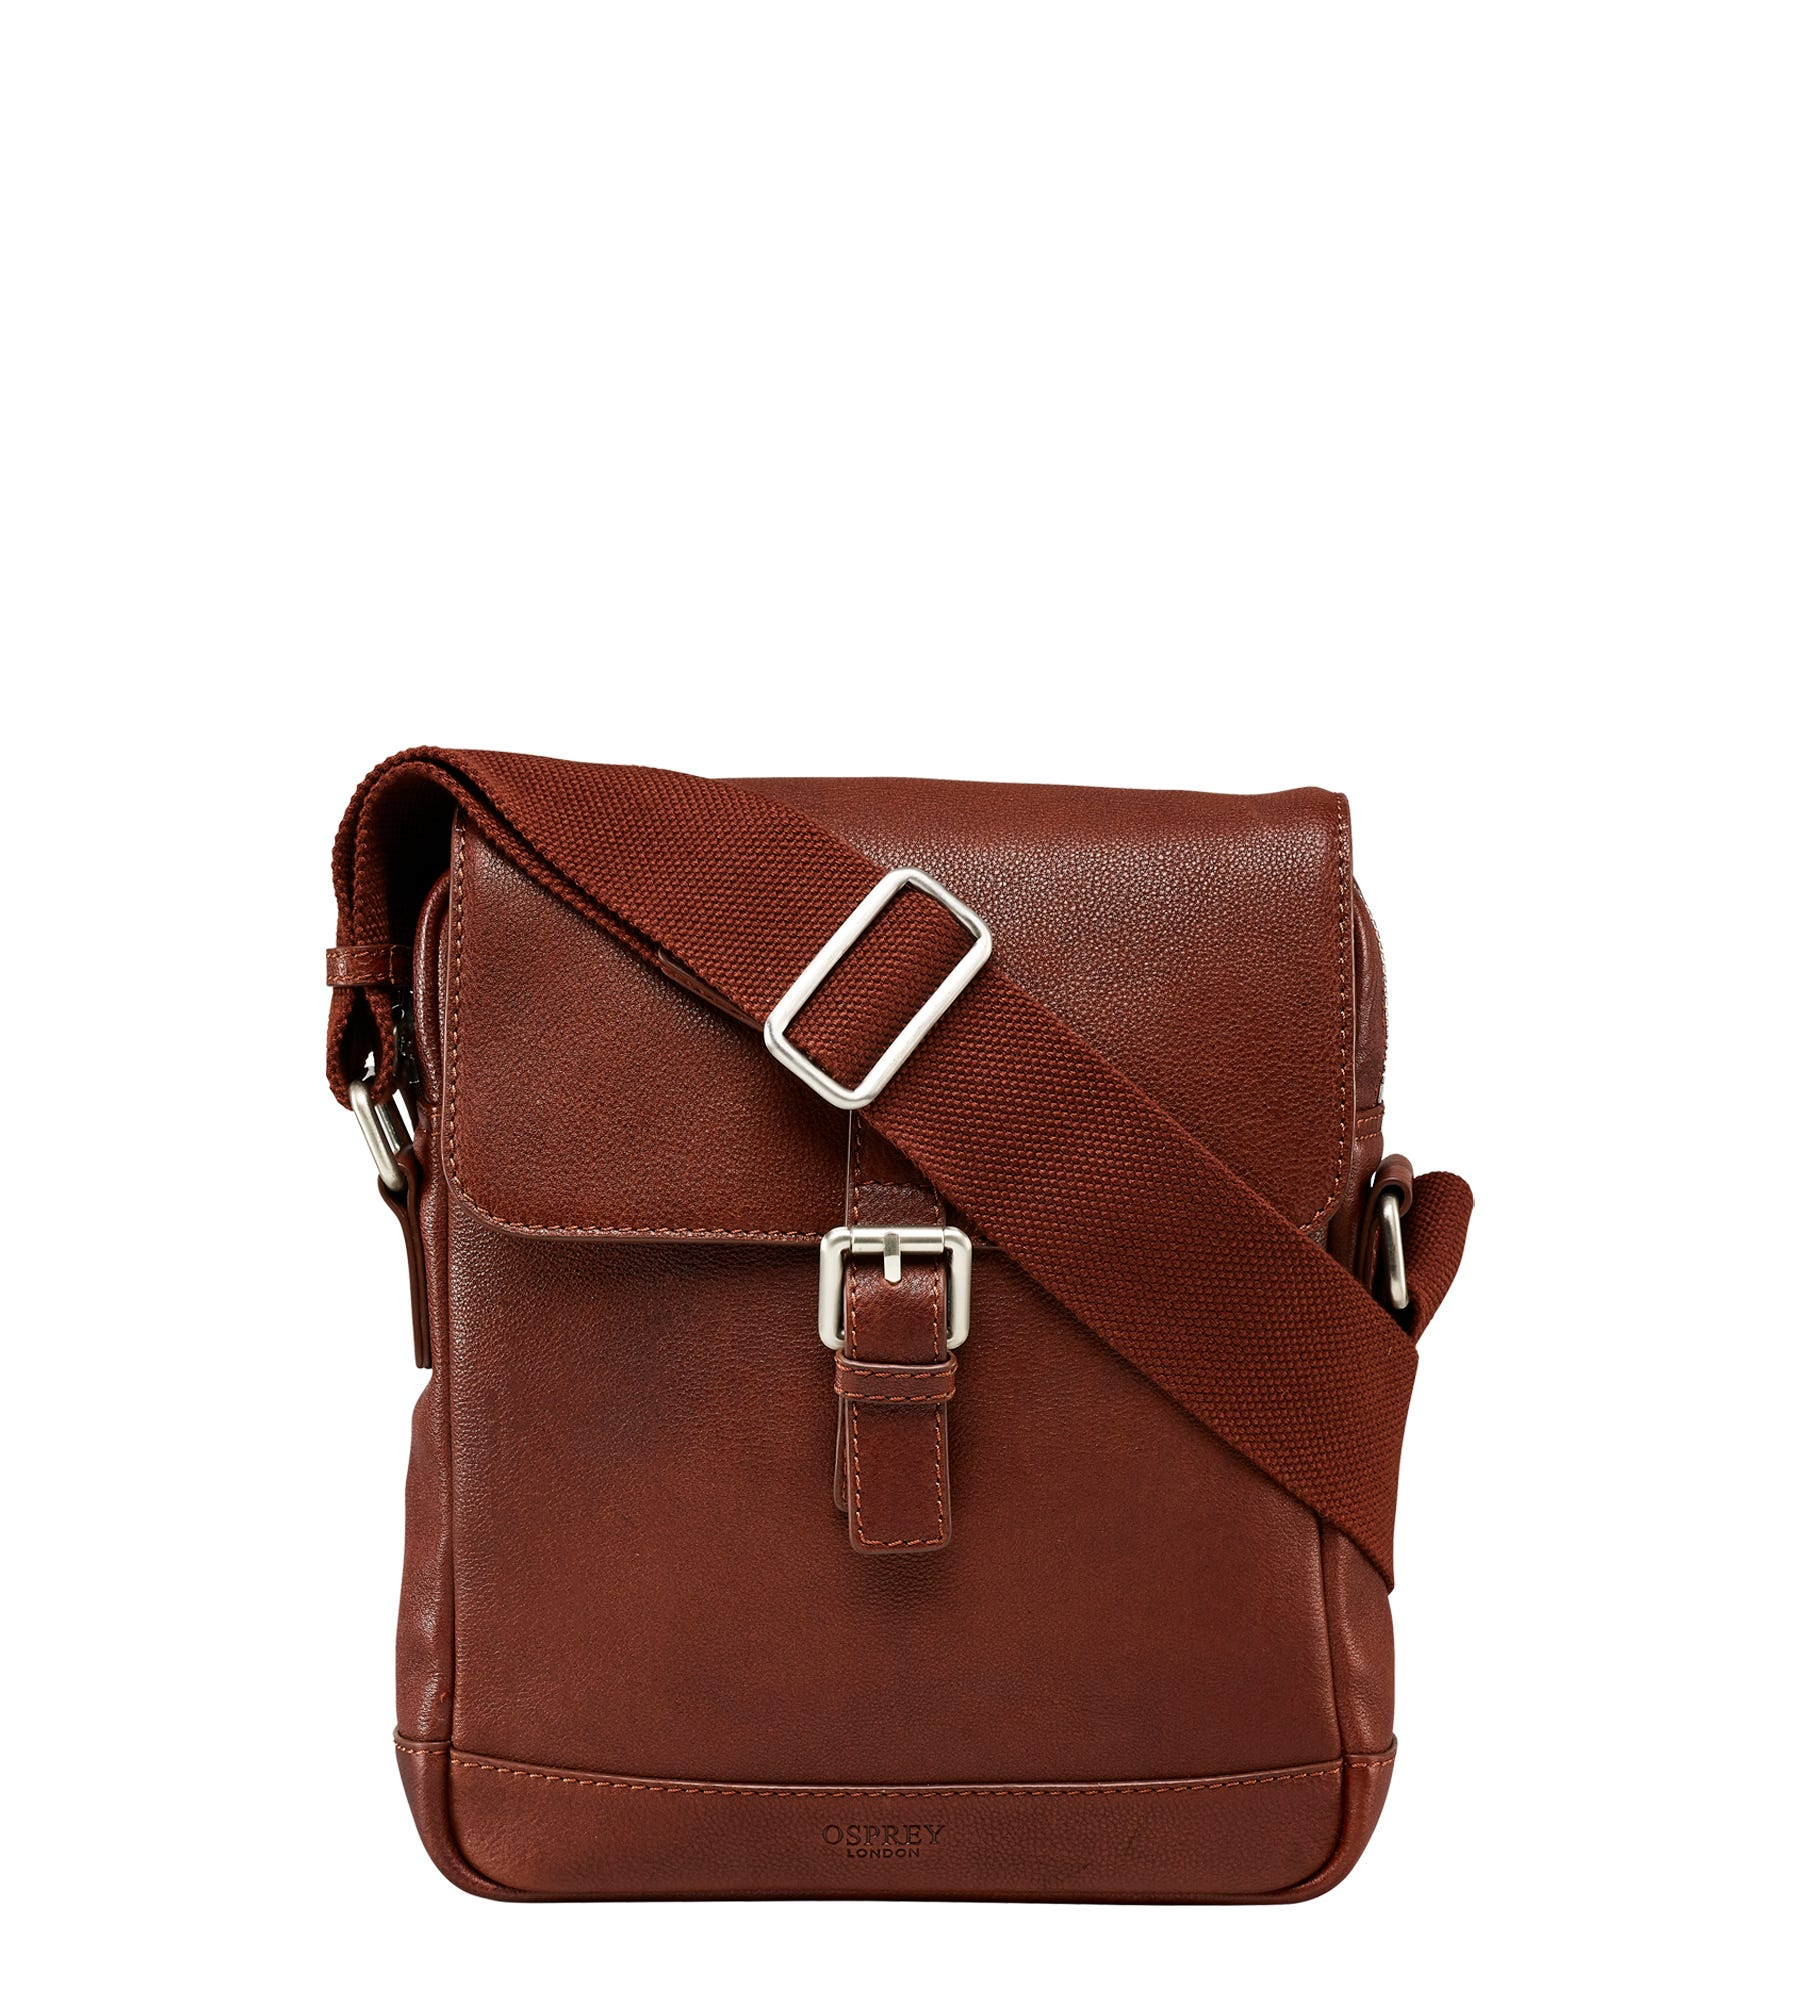 An image of The Small Watson Leather Satchel